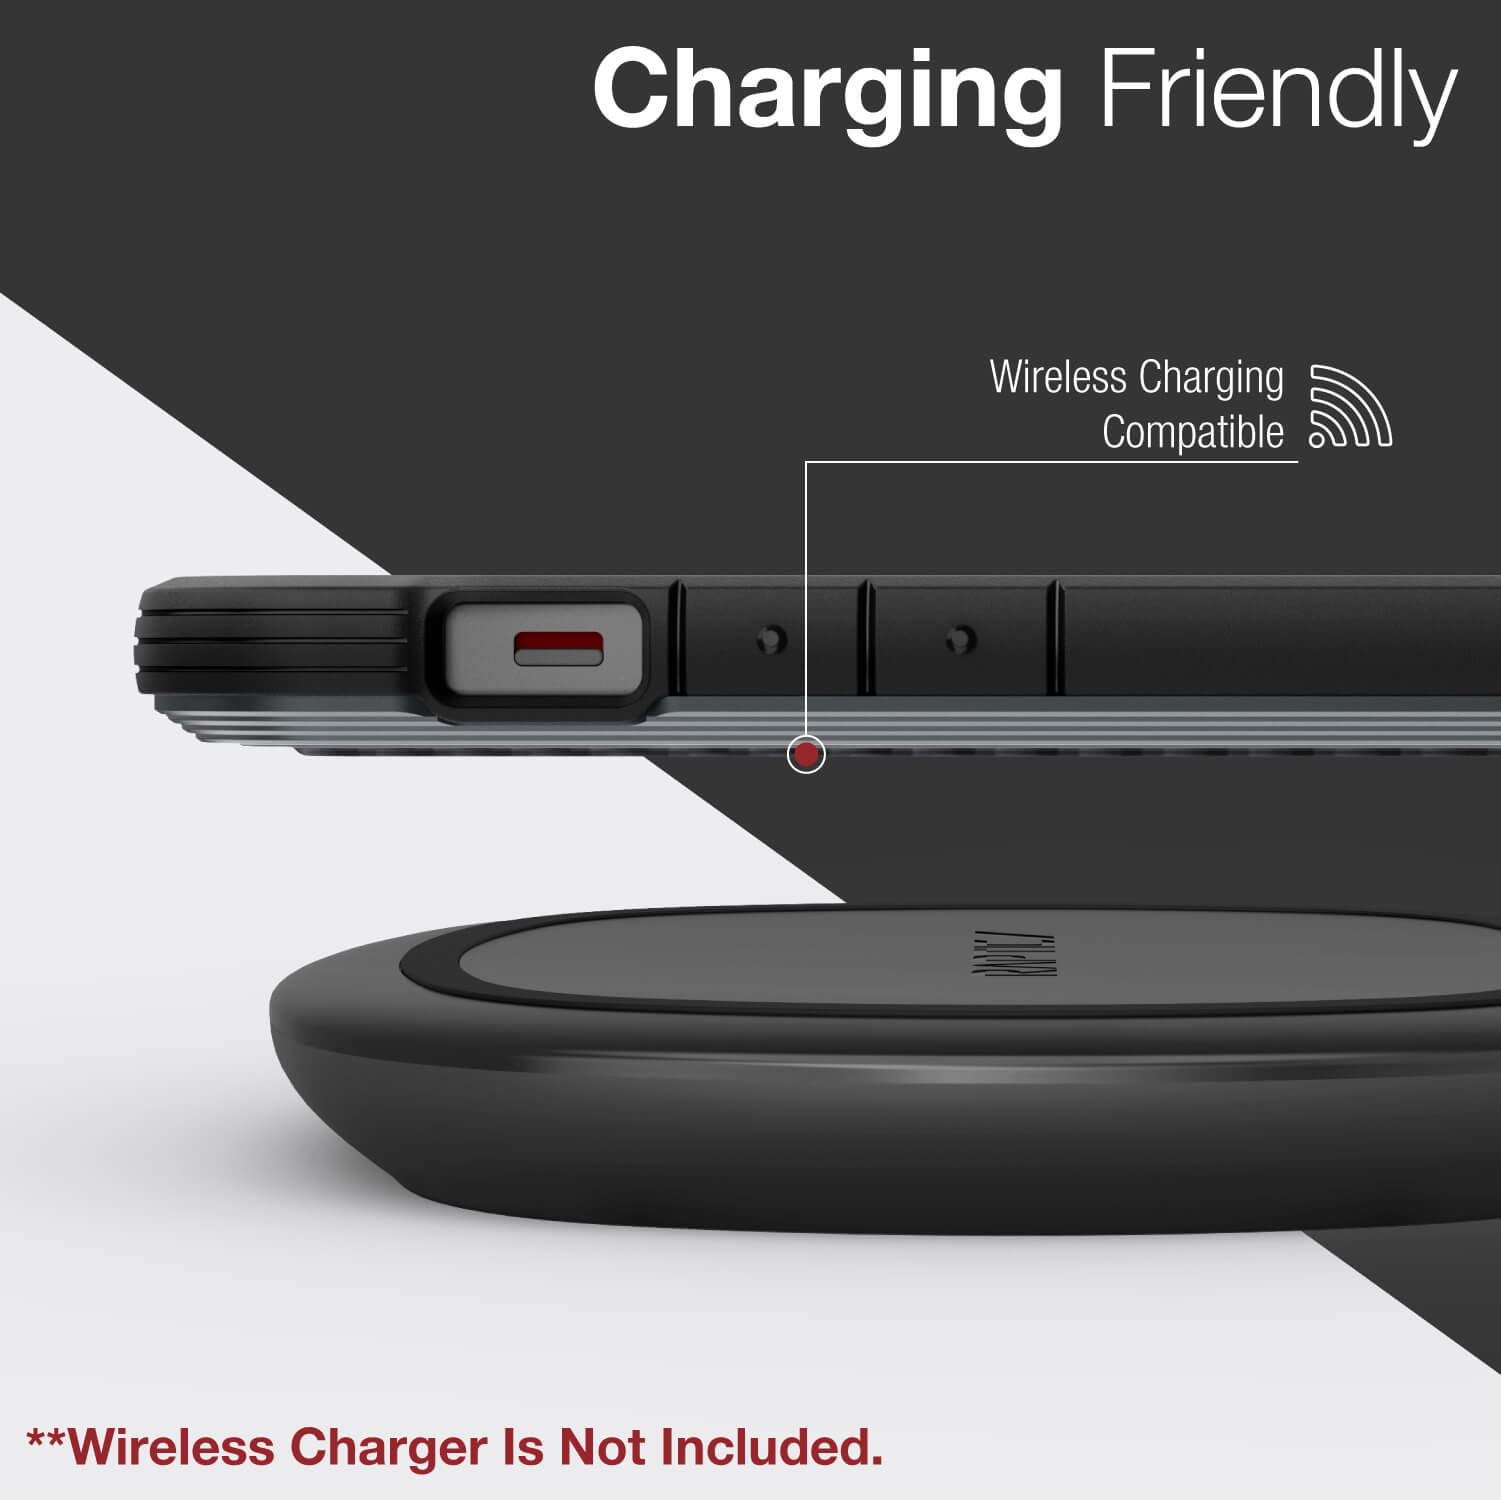 Infographic showing the iPhone 12 in a black Raptic Shield case with wireless charging compatibility